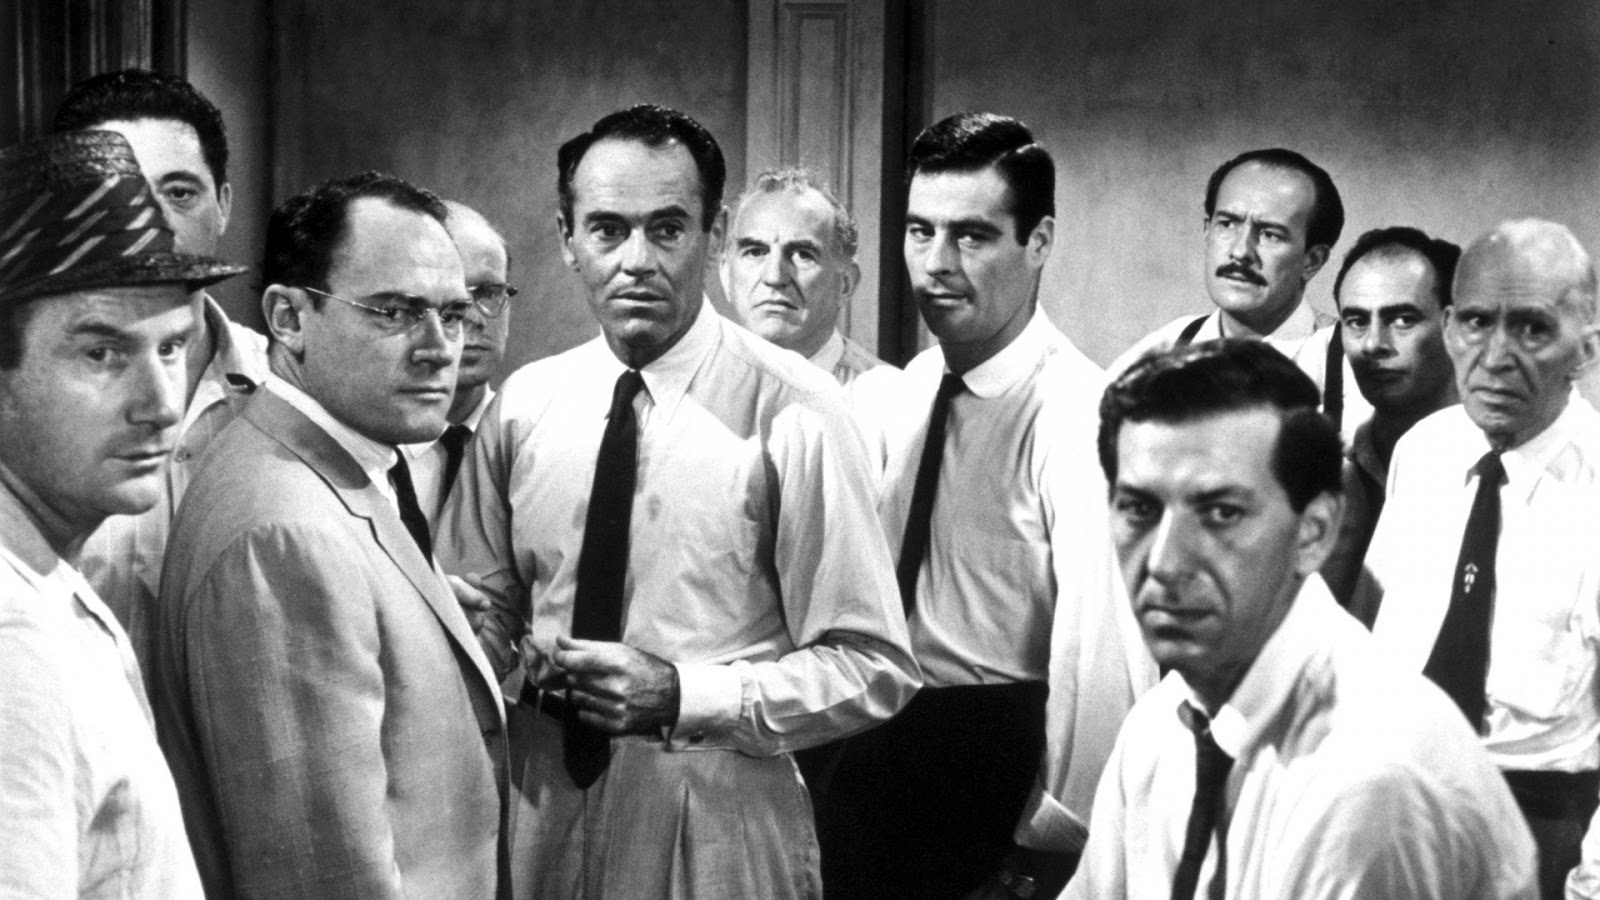 Directorial Debut Sidney Lumets 12 ANGRY MEN